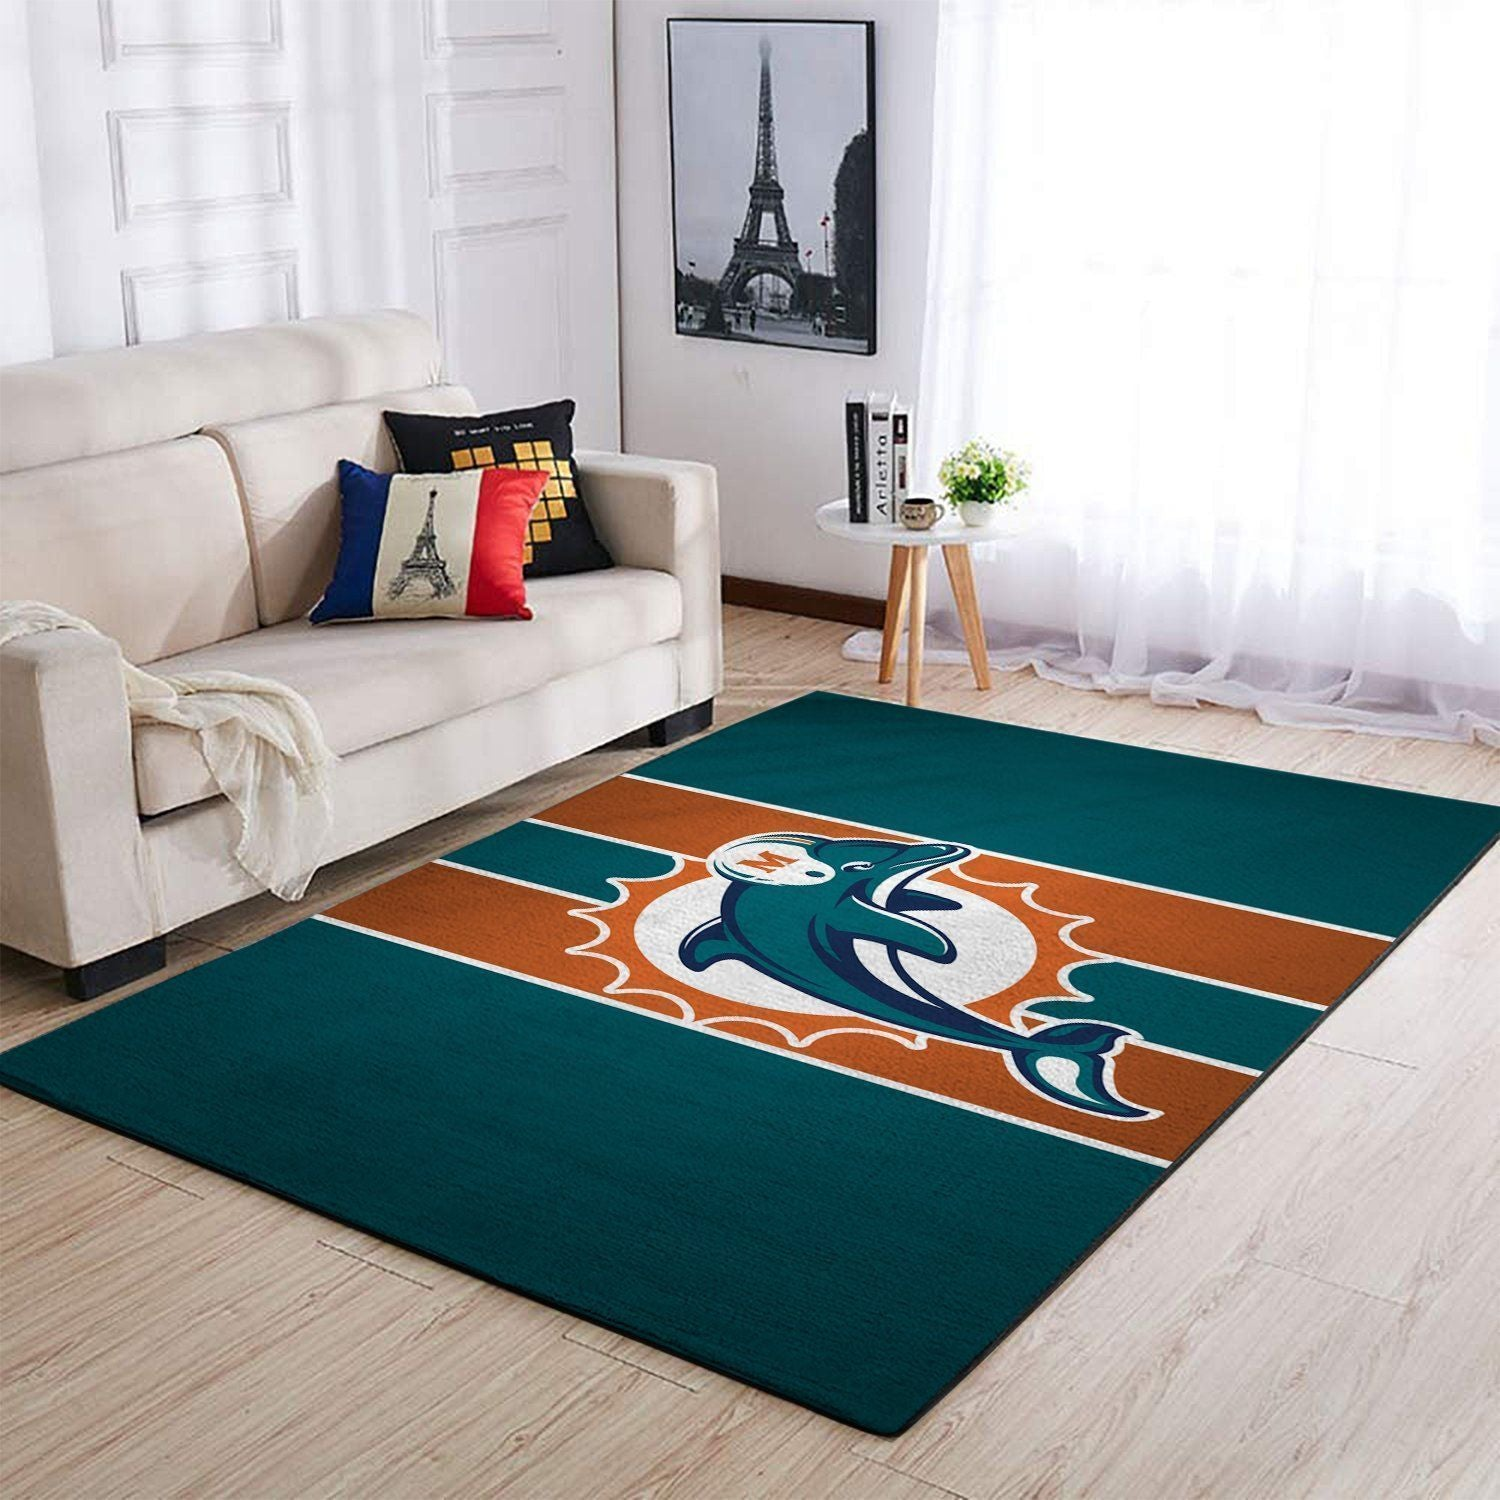 Miami Dolphins Area Rugs NFL Football Living Room Carpet Team Logo Custom Floor Home Decor 1910071